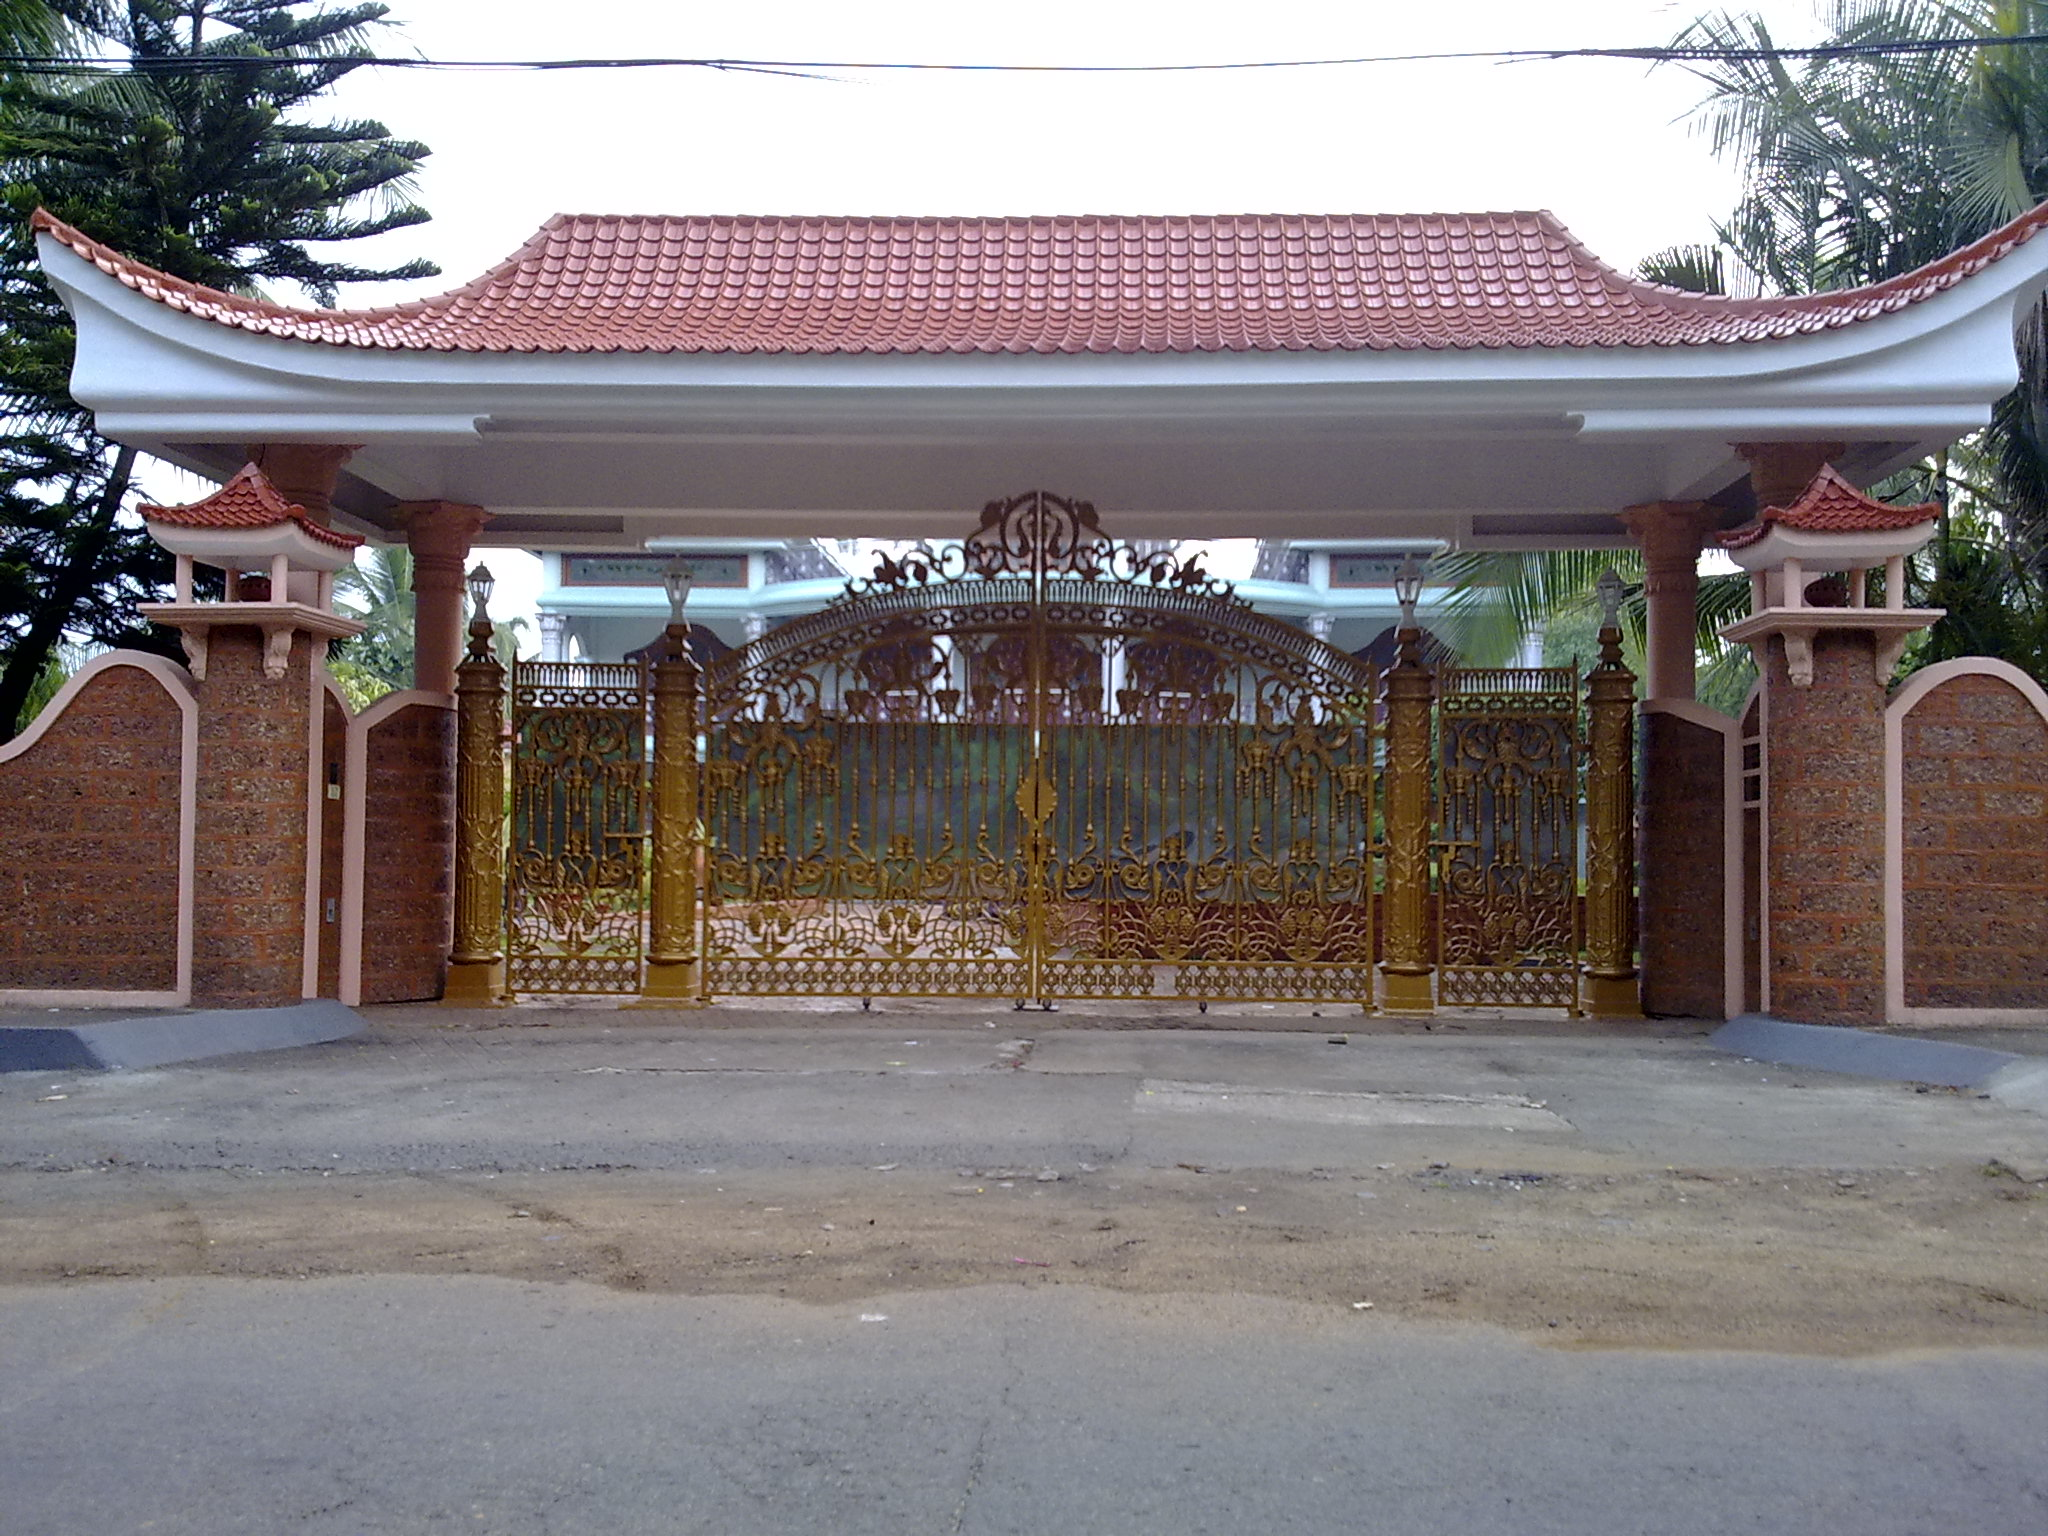 File Chinese type gate from kerala jpg. File Chinese type gate from kerala jpg   Wikimedia Commons